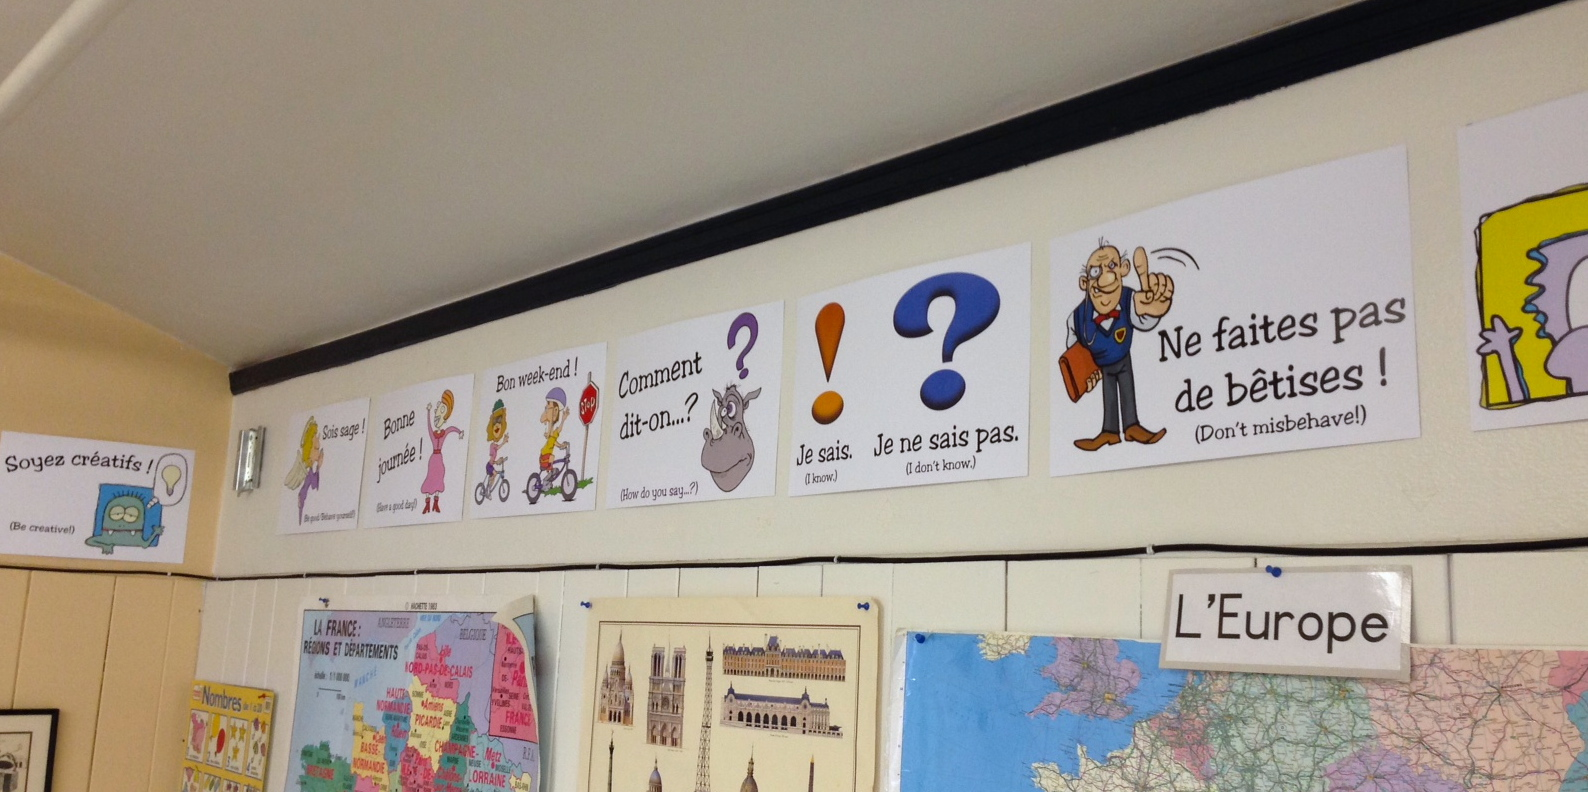 Spanish Classroom Decorations High School : Classroom decorations share the knownledge